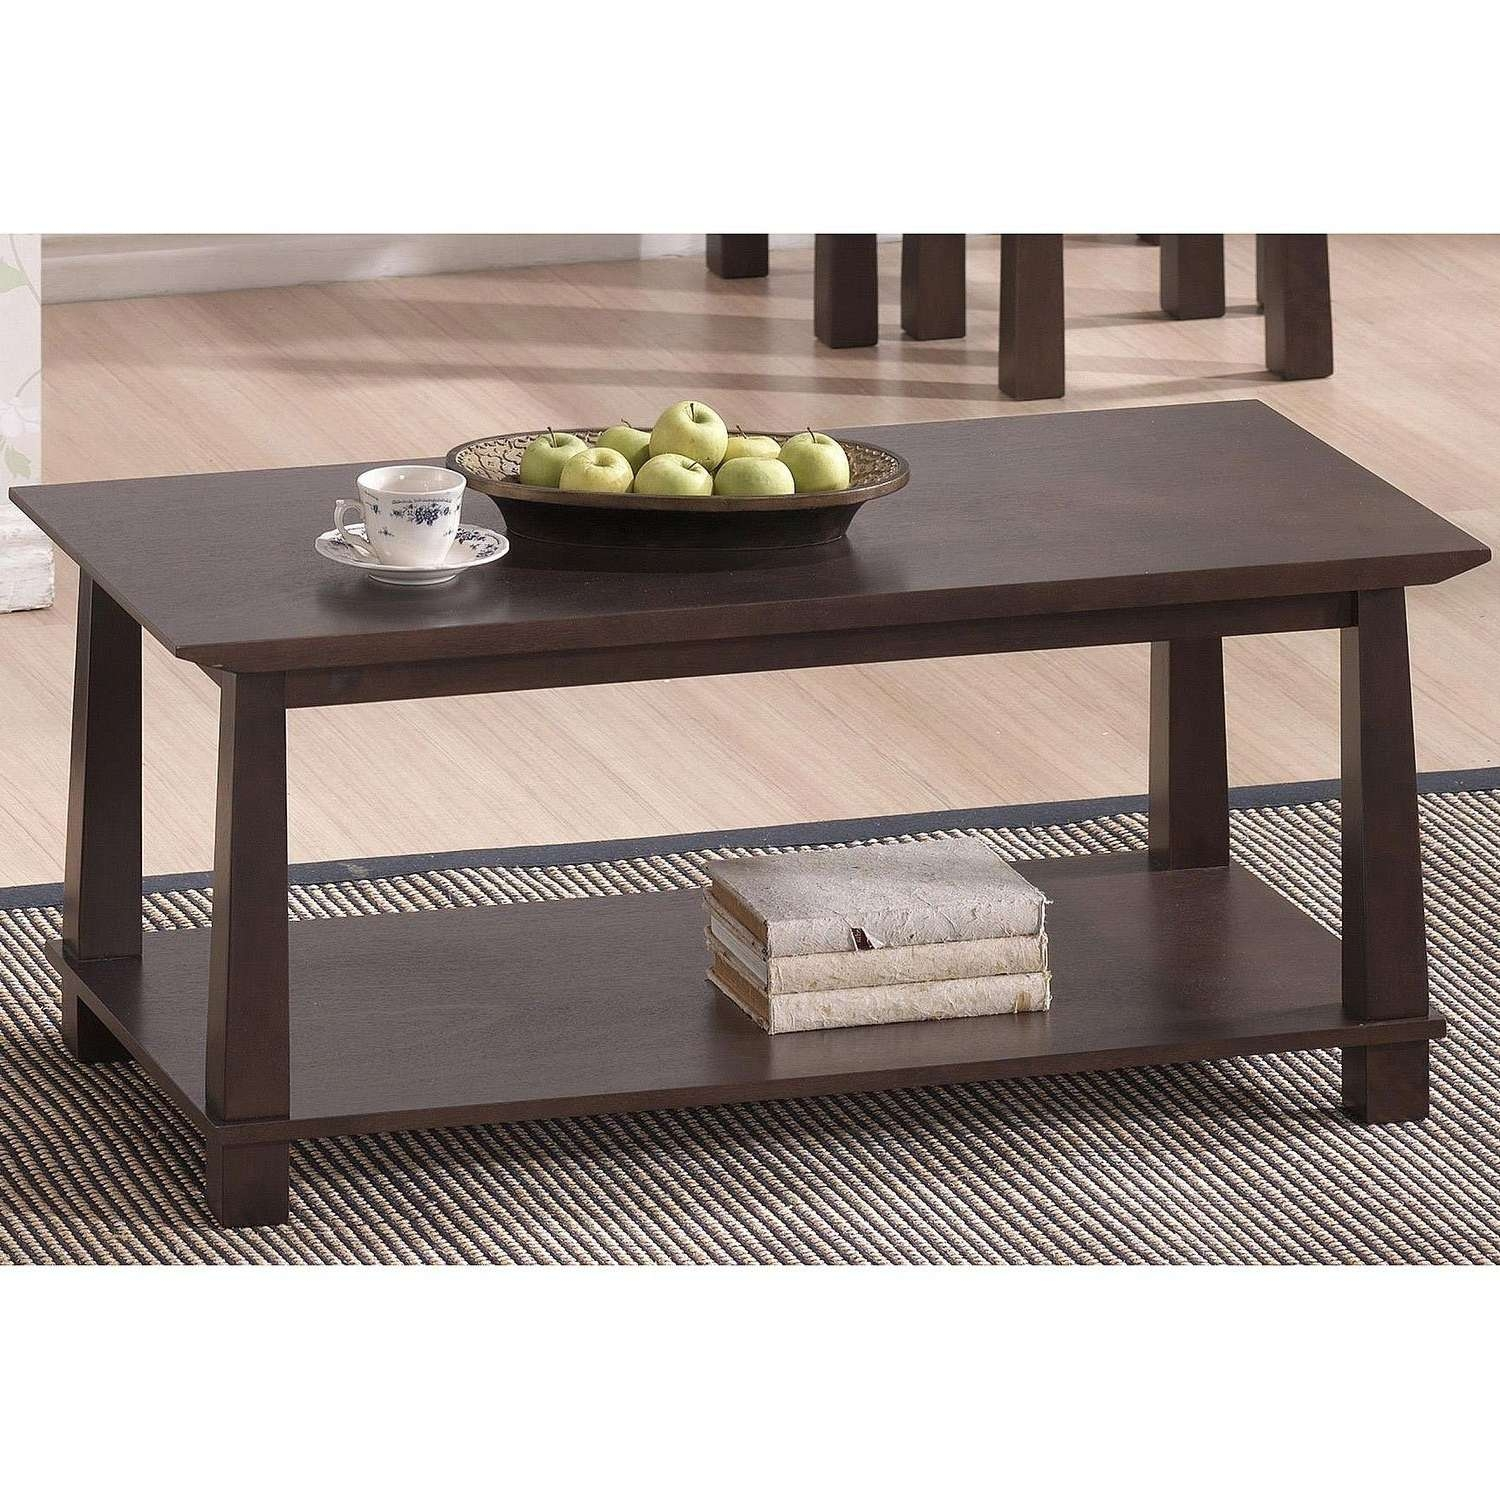 Coffee Table : Magnificent Monarch Dining Table Monarch Intended For Current Dark Brown Coffee Tables (View 4 of 20)